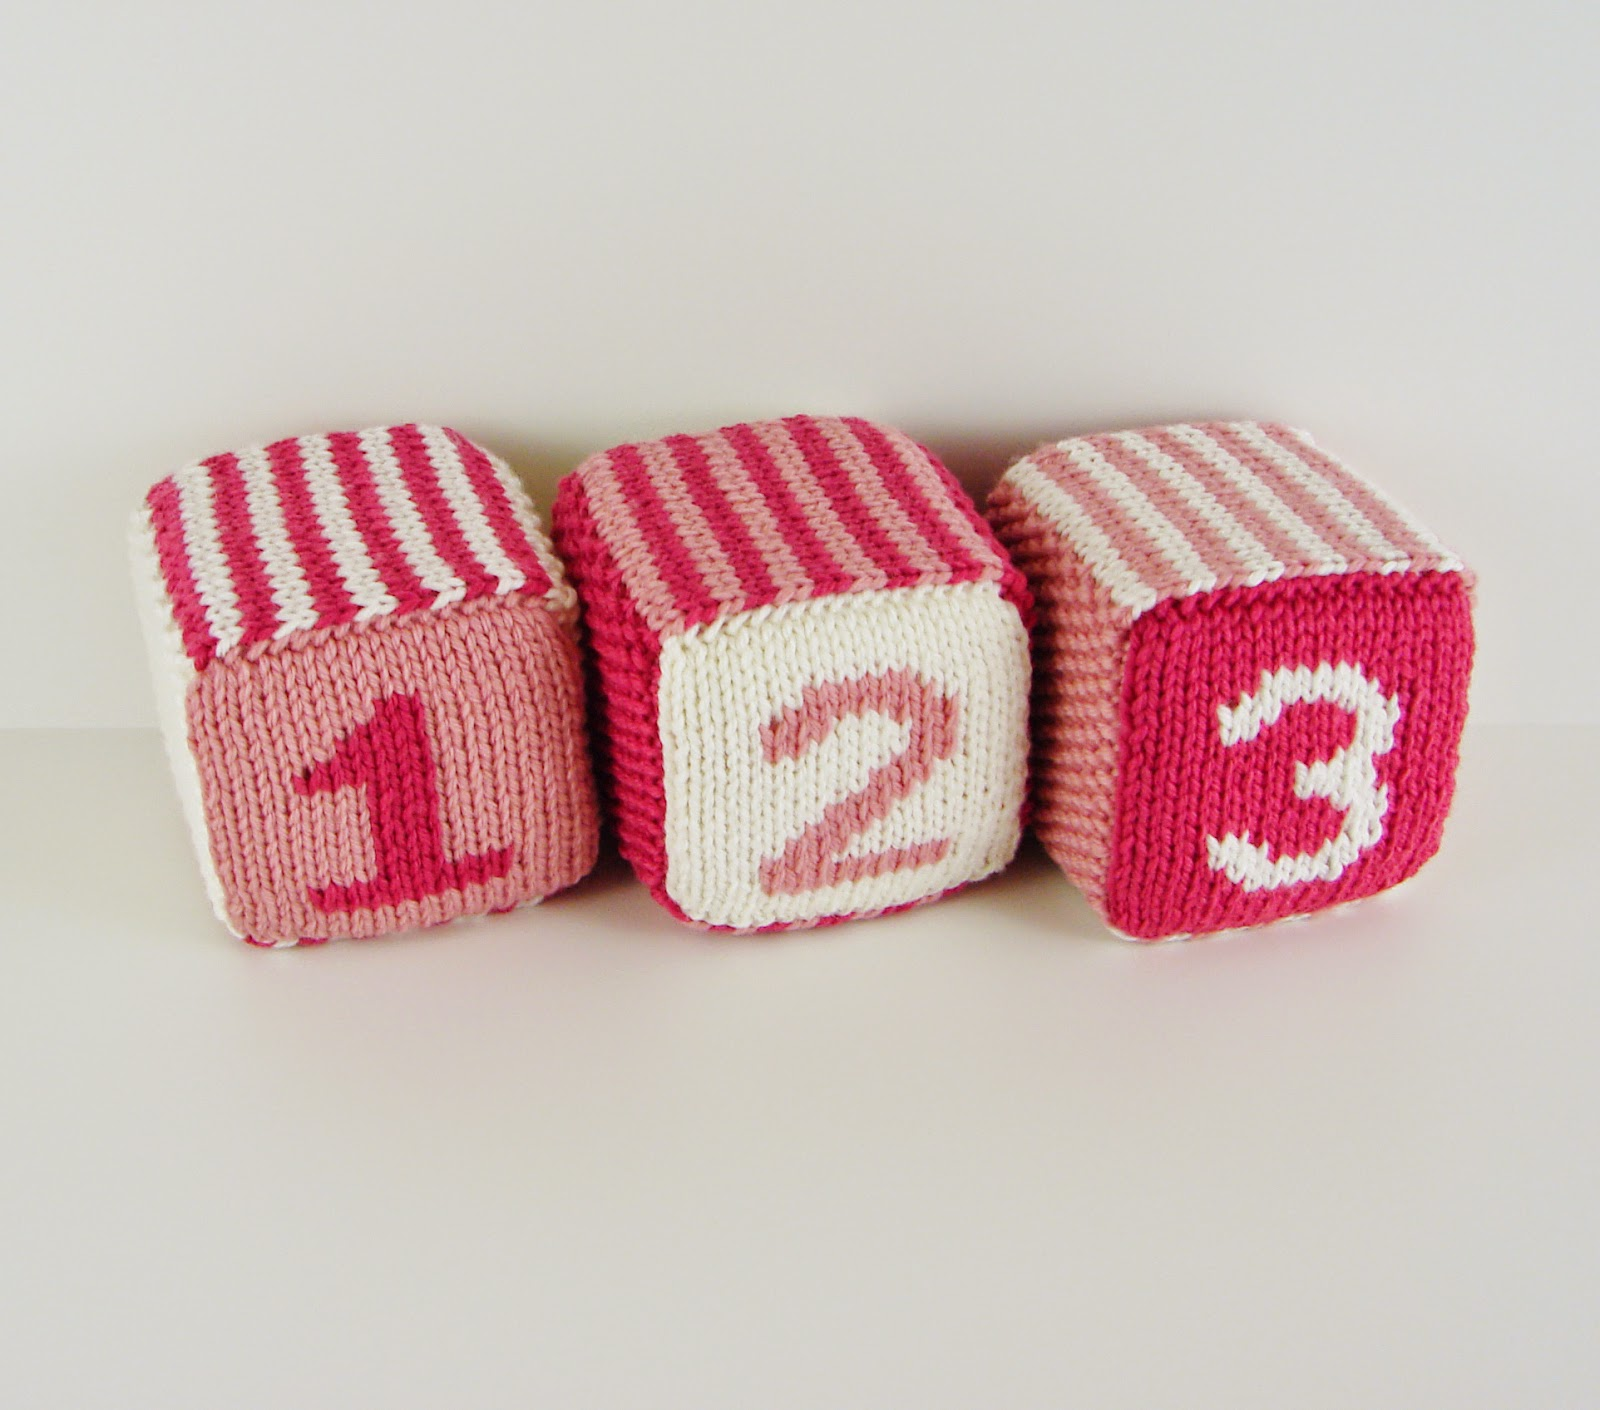 knit, blocks, foam, toys, hand knit, letter, number, striped, white, pink